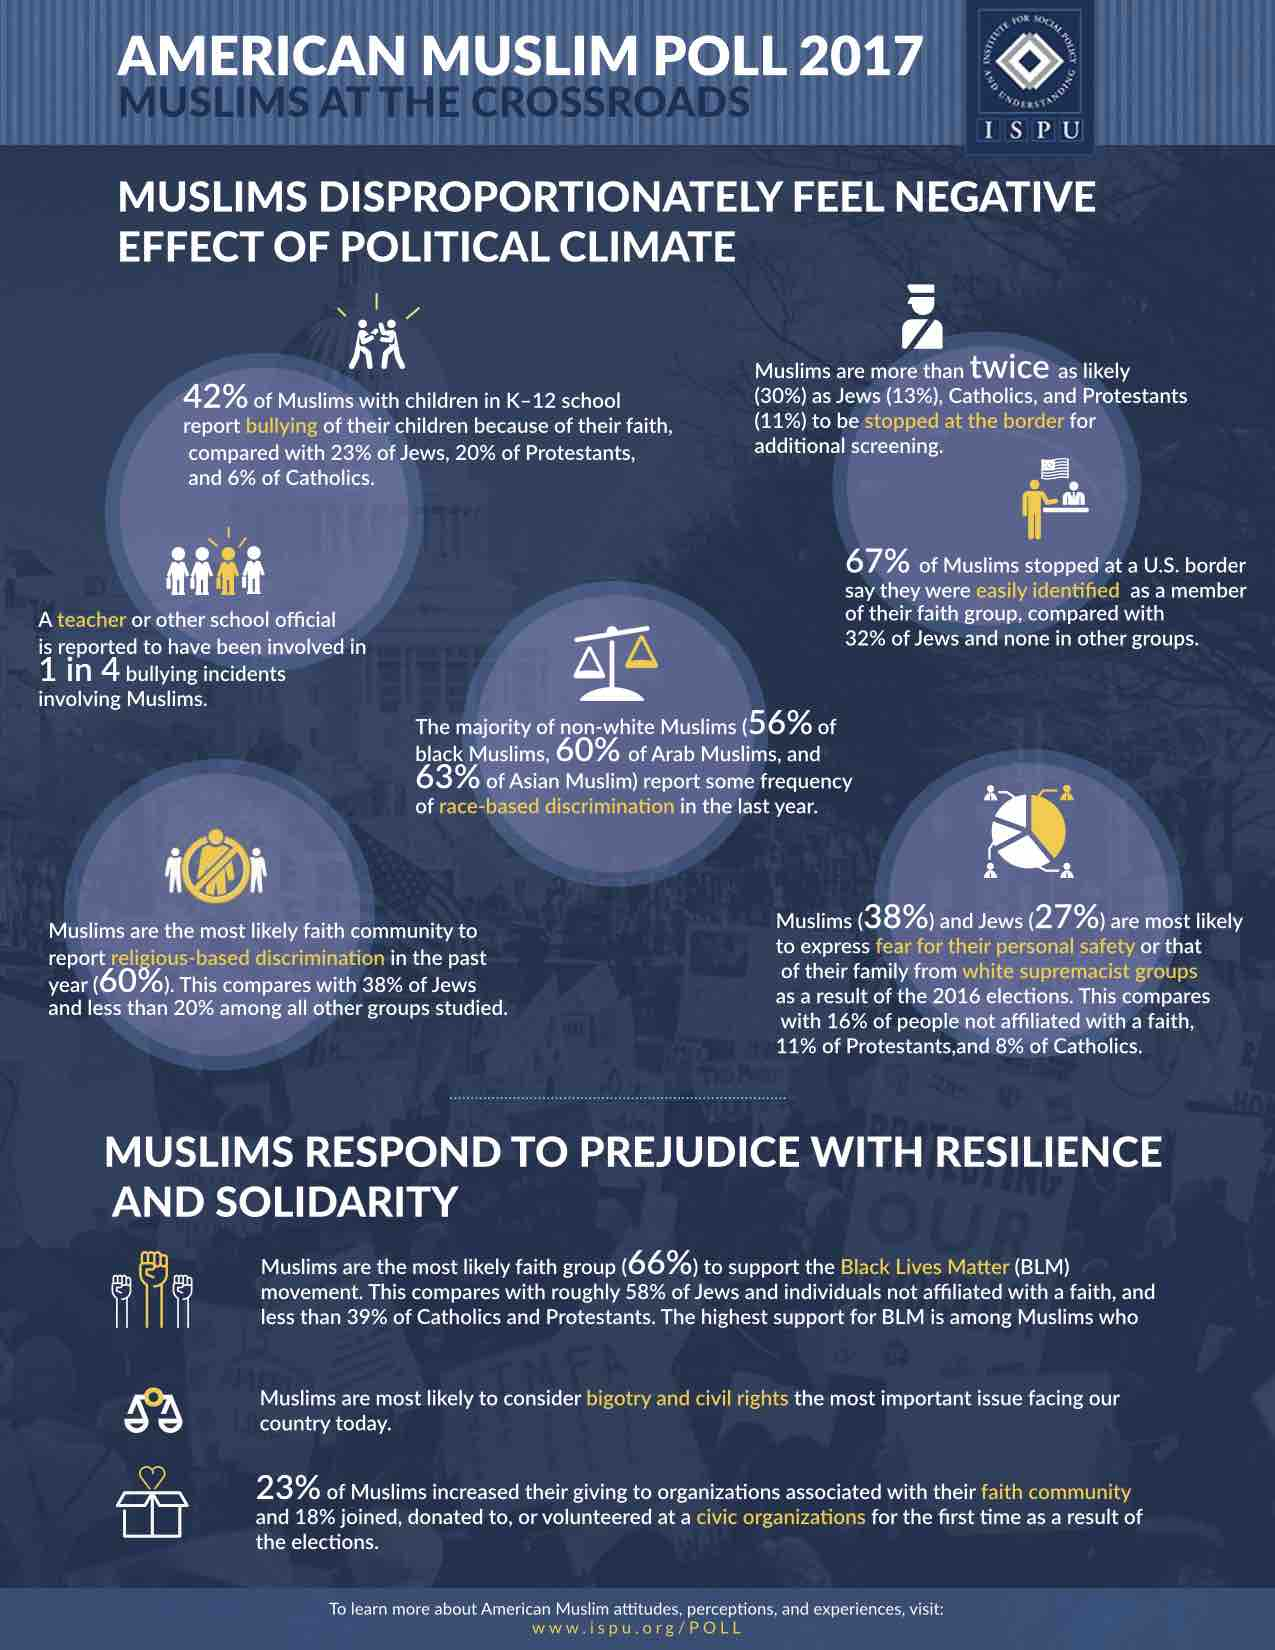 Infographic showing Muslims Disproportionately Feel Negative Effect of Political Climate & Respond to Prejudice with Resilience and Solidarity